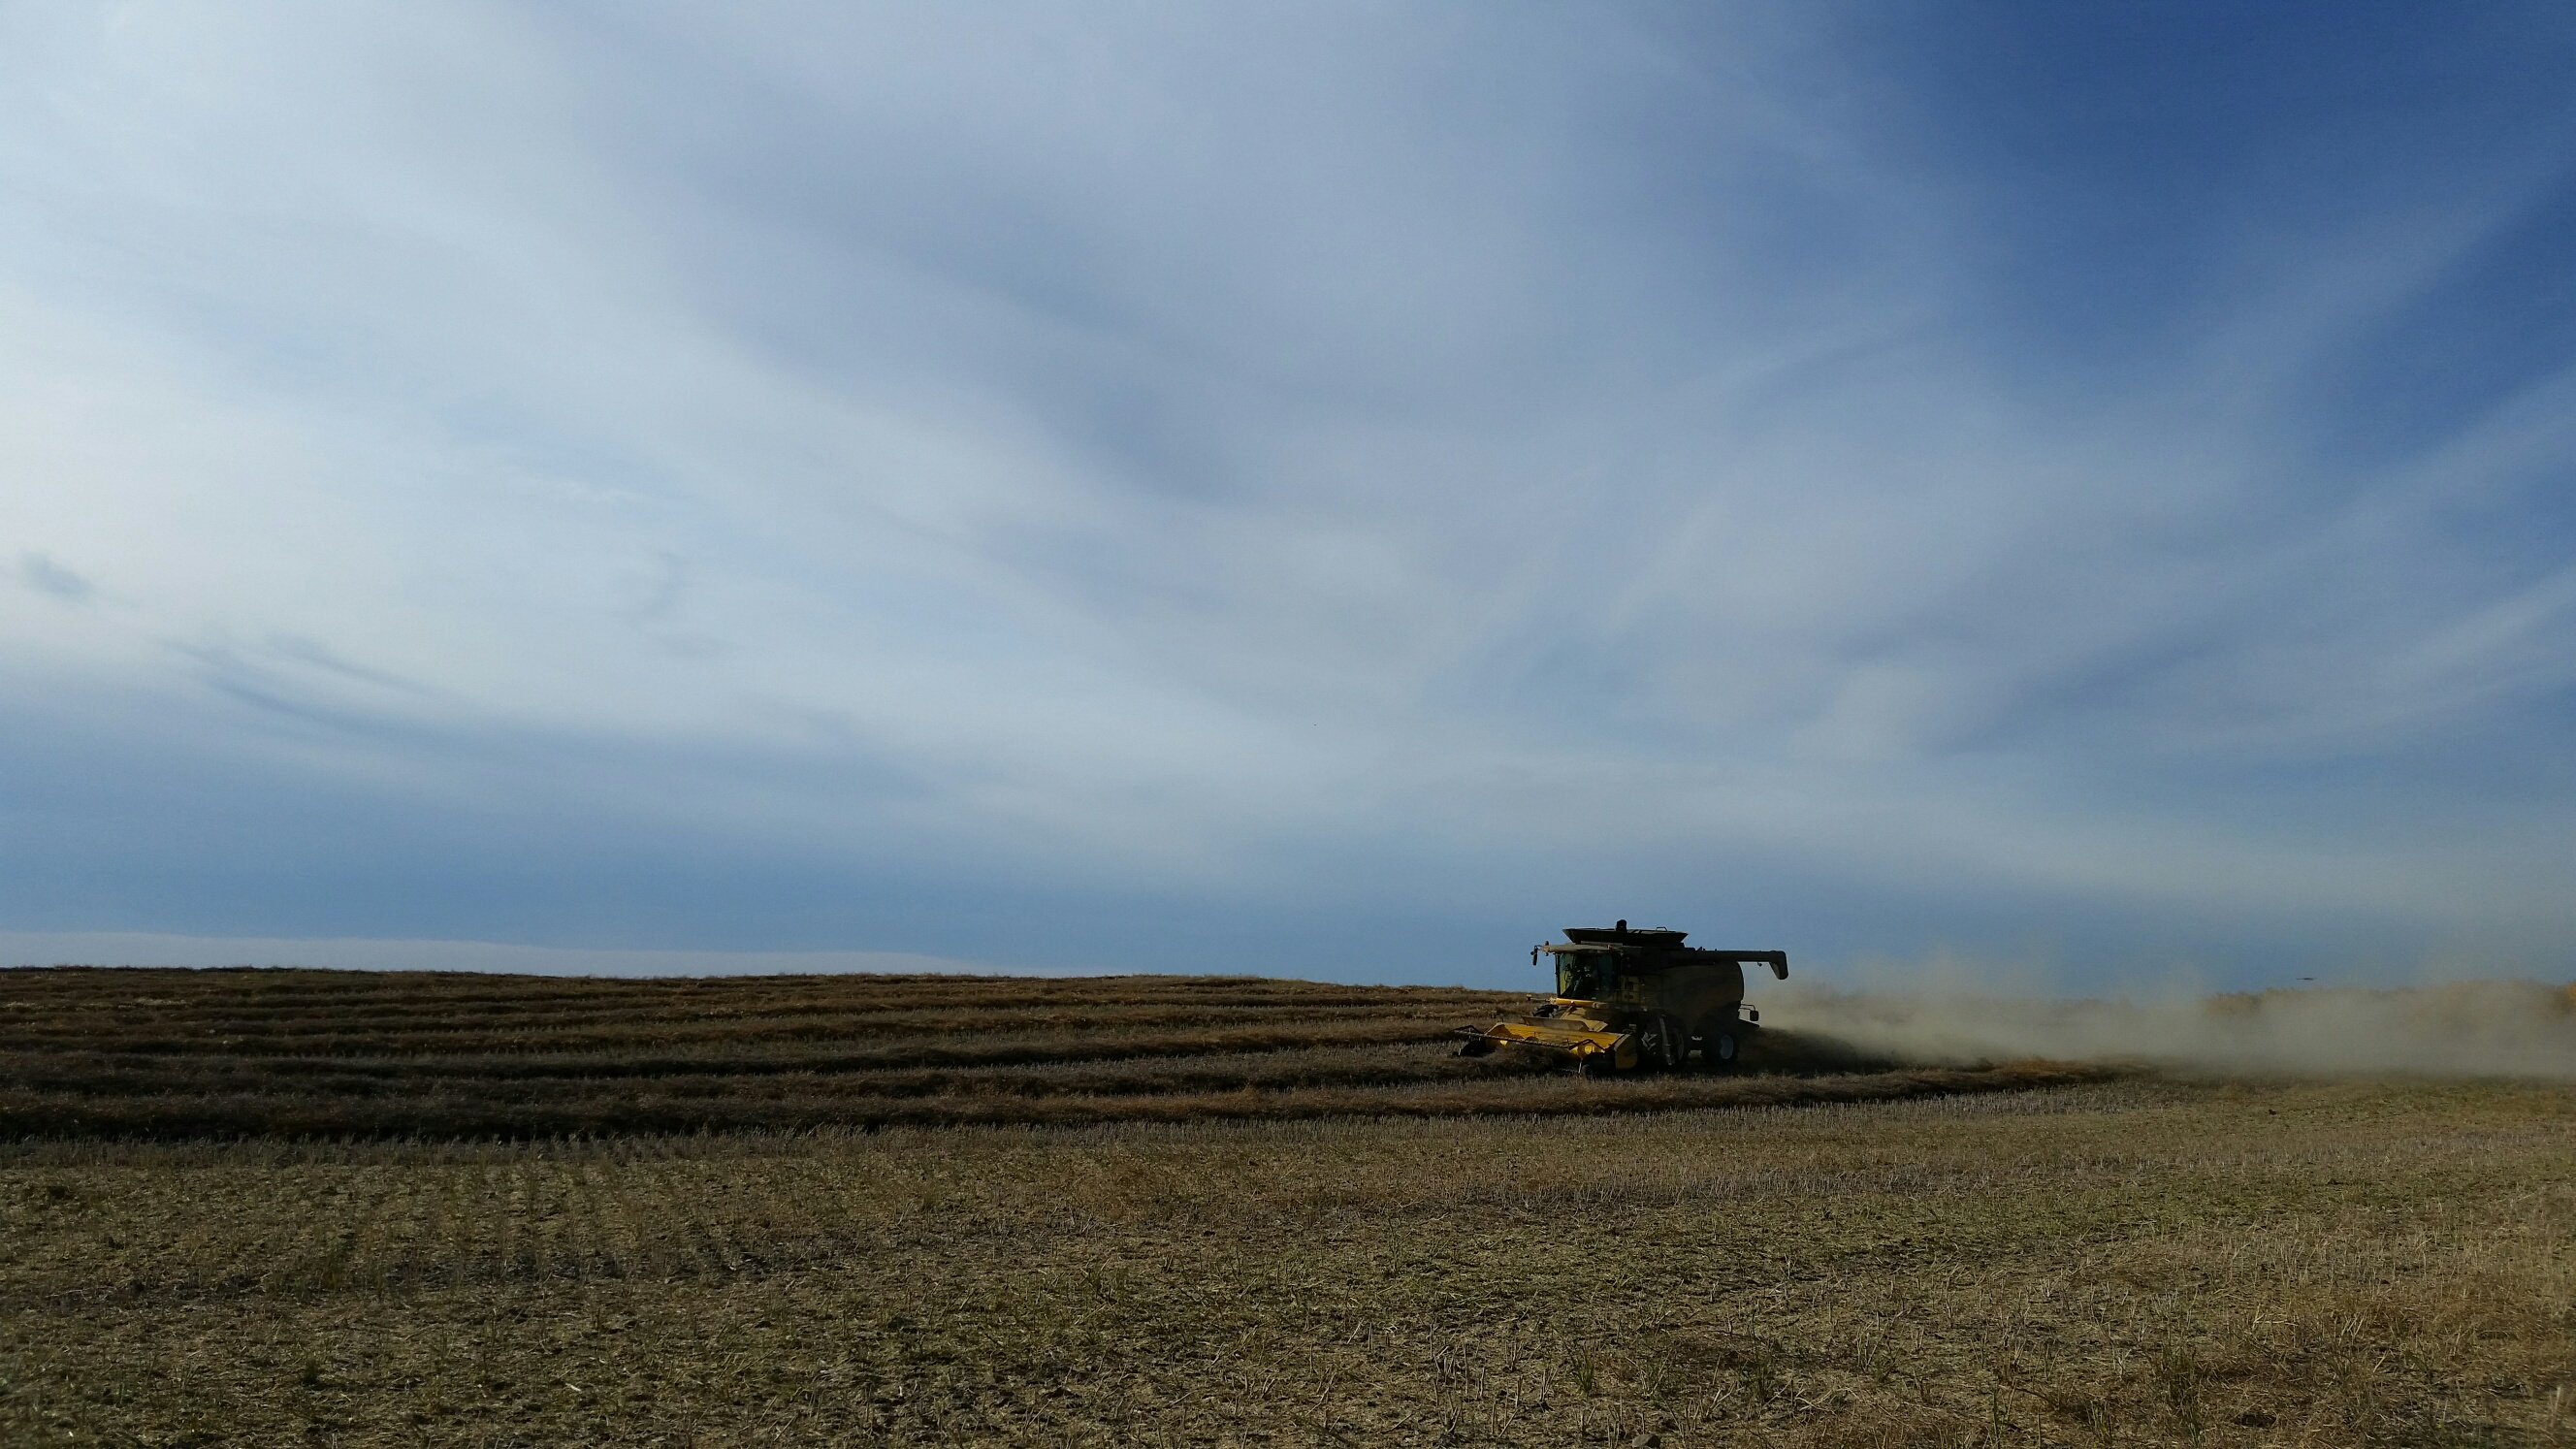 Beautiful day for combining!!